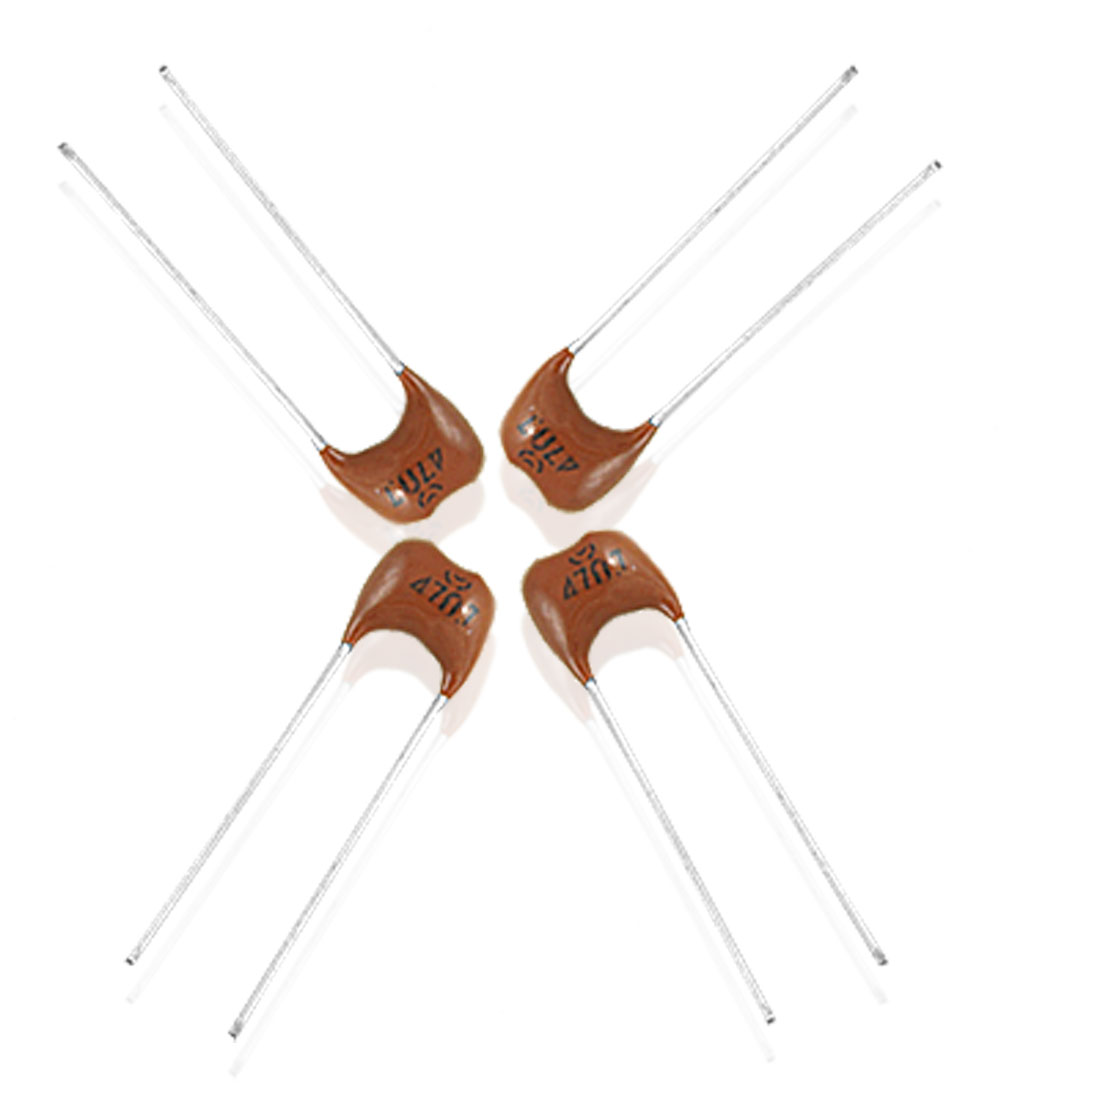 10 x 300V 470pF 5% Radial Lead Silver Mica Capacitors